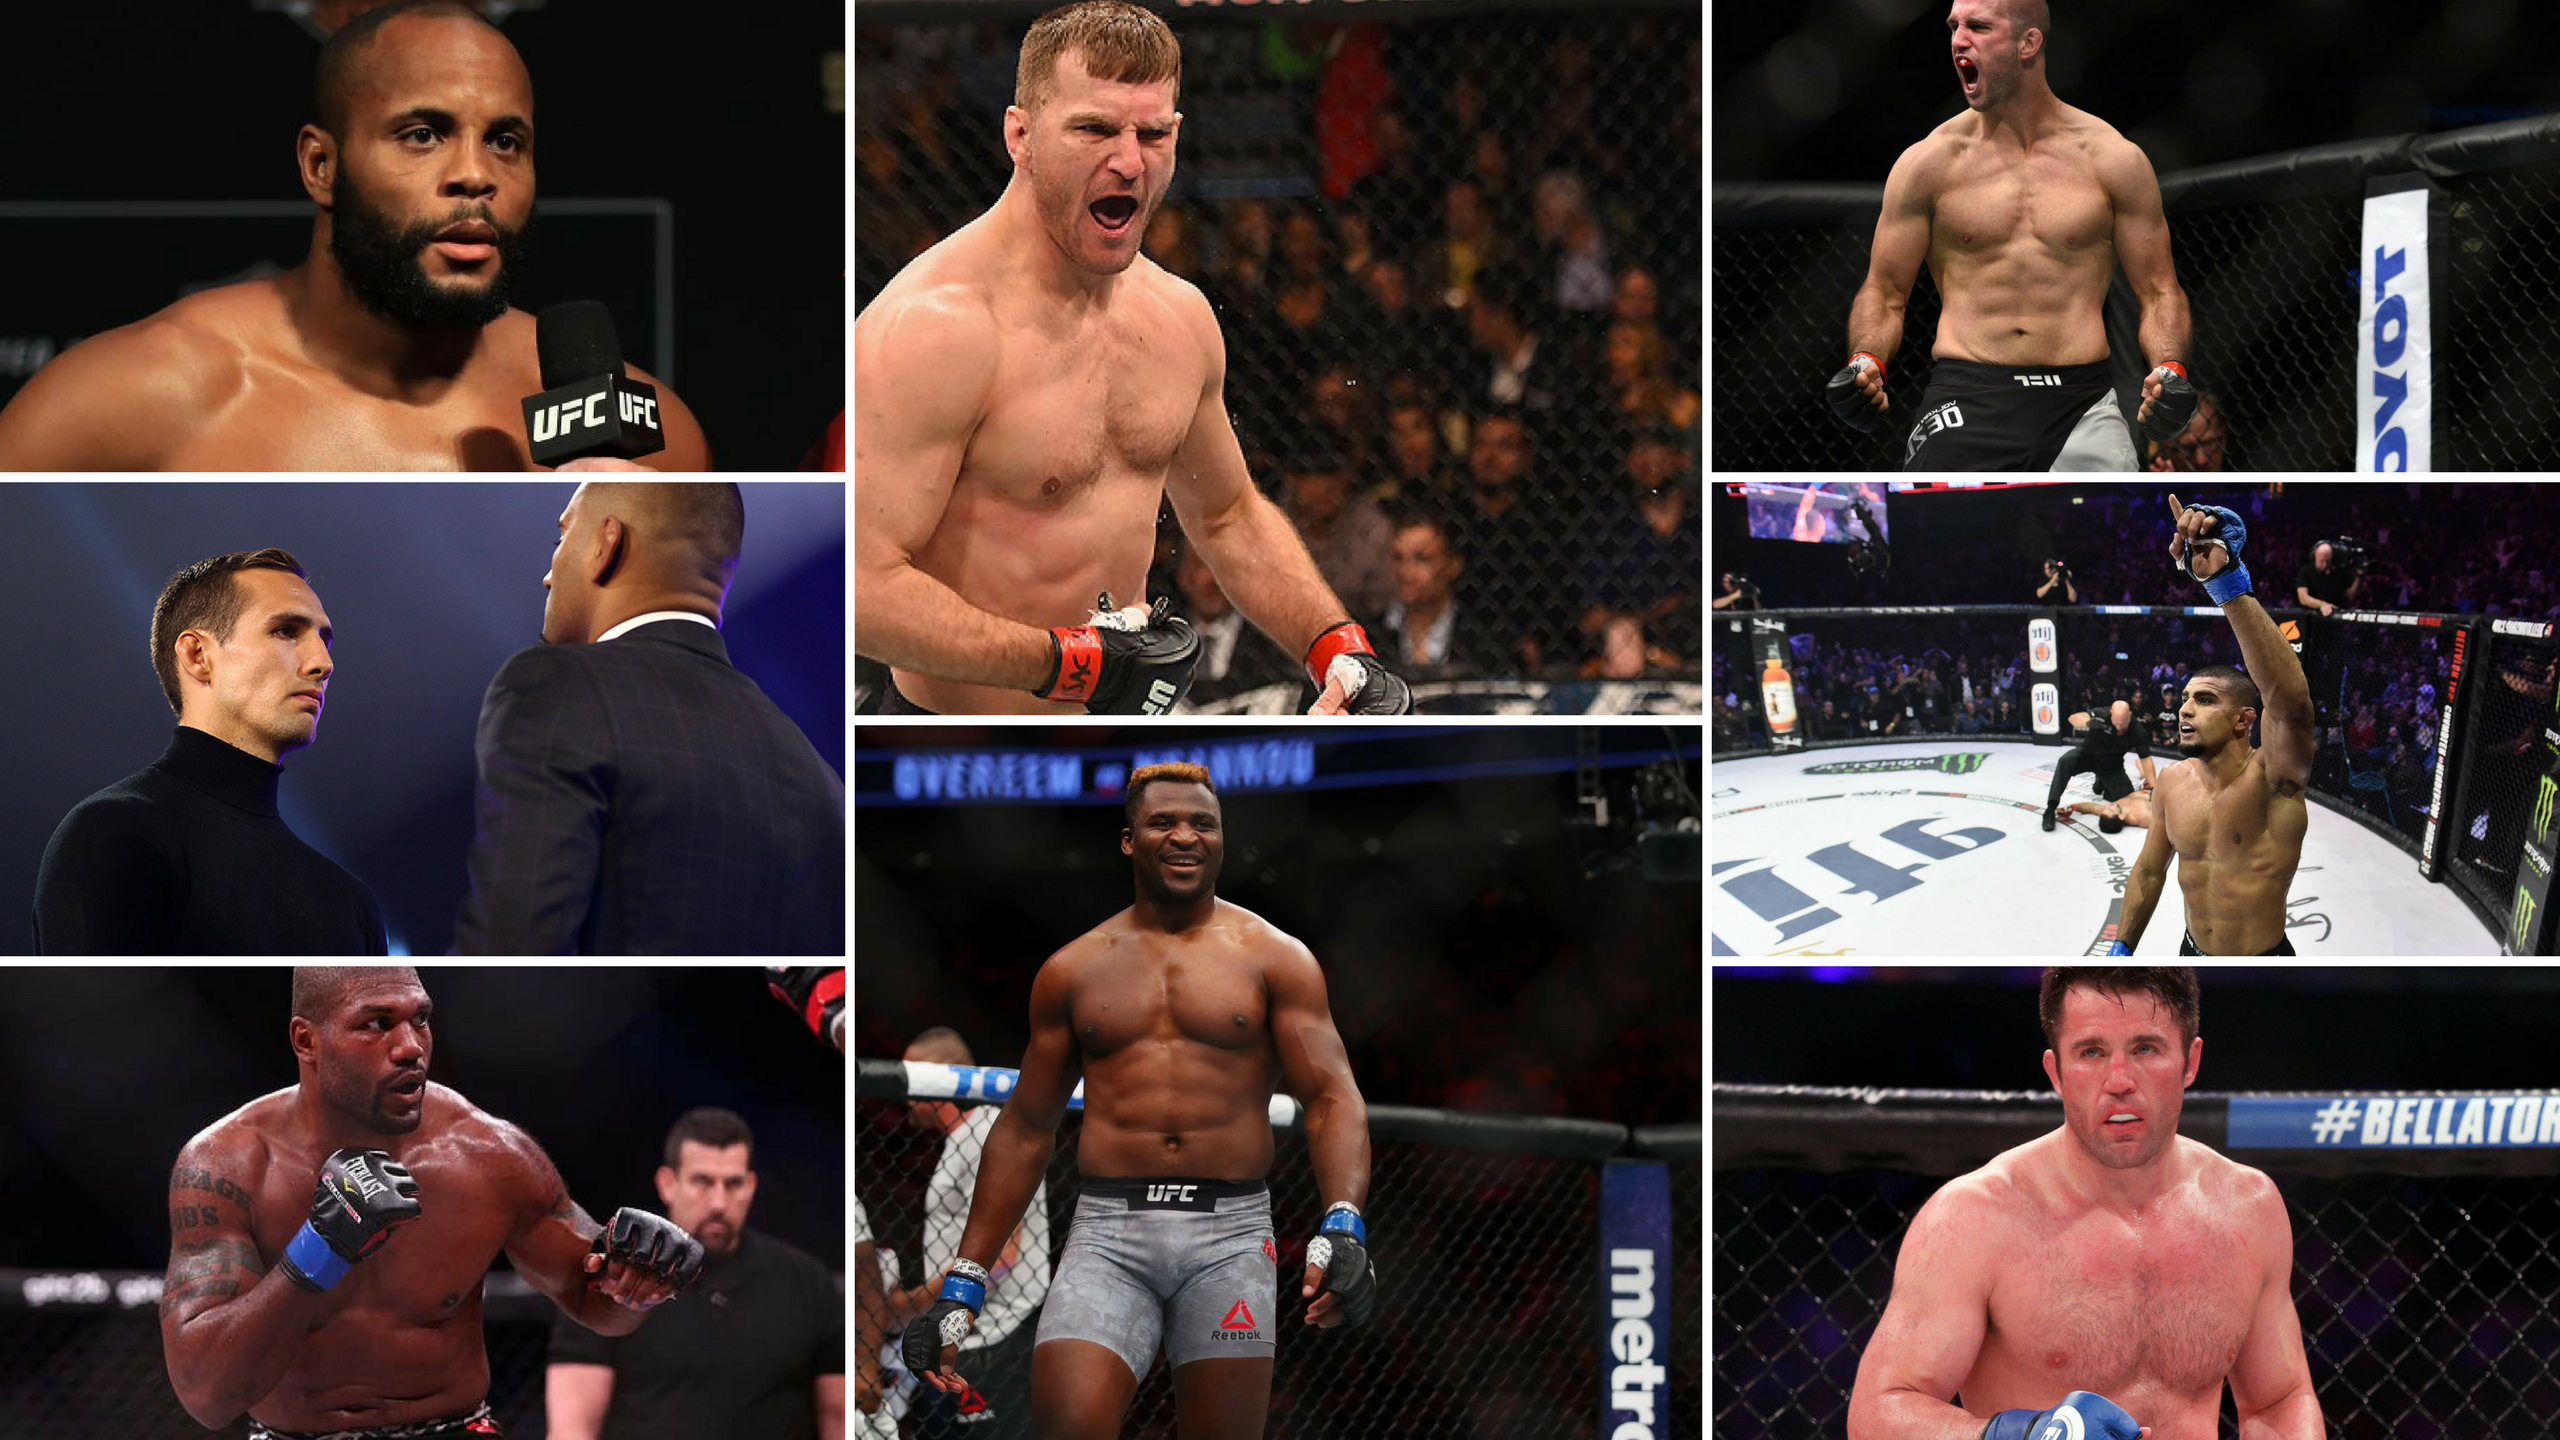 Poll: Will you watch UFC 220 or Bellator 192 or both and how? -